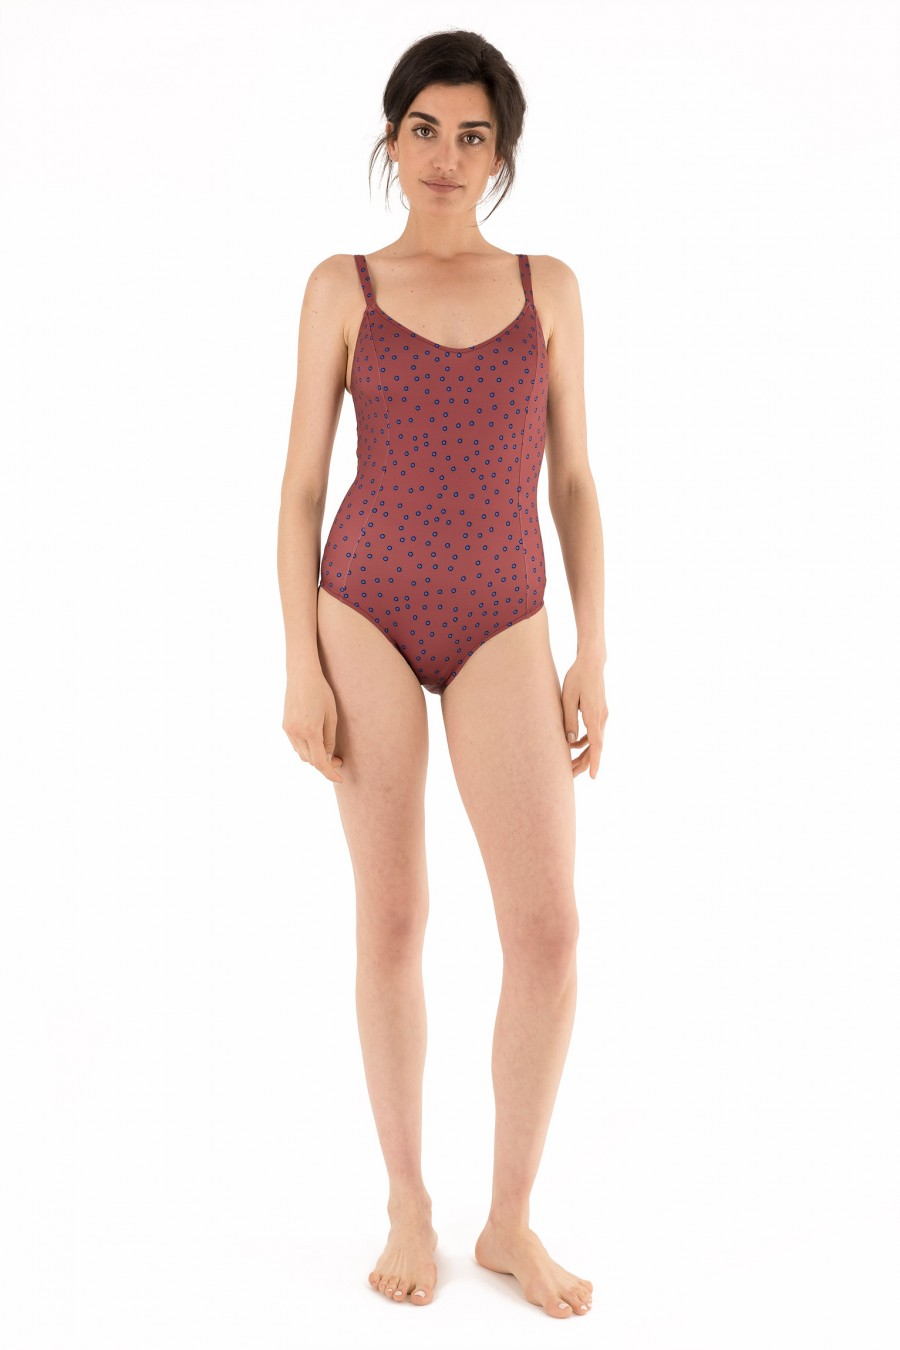 One-piece swimsuit with sides